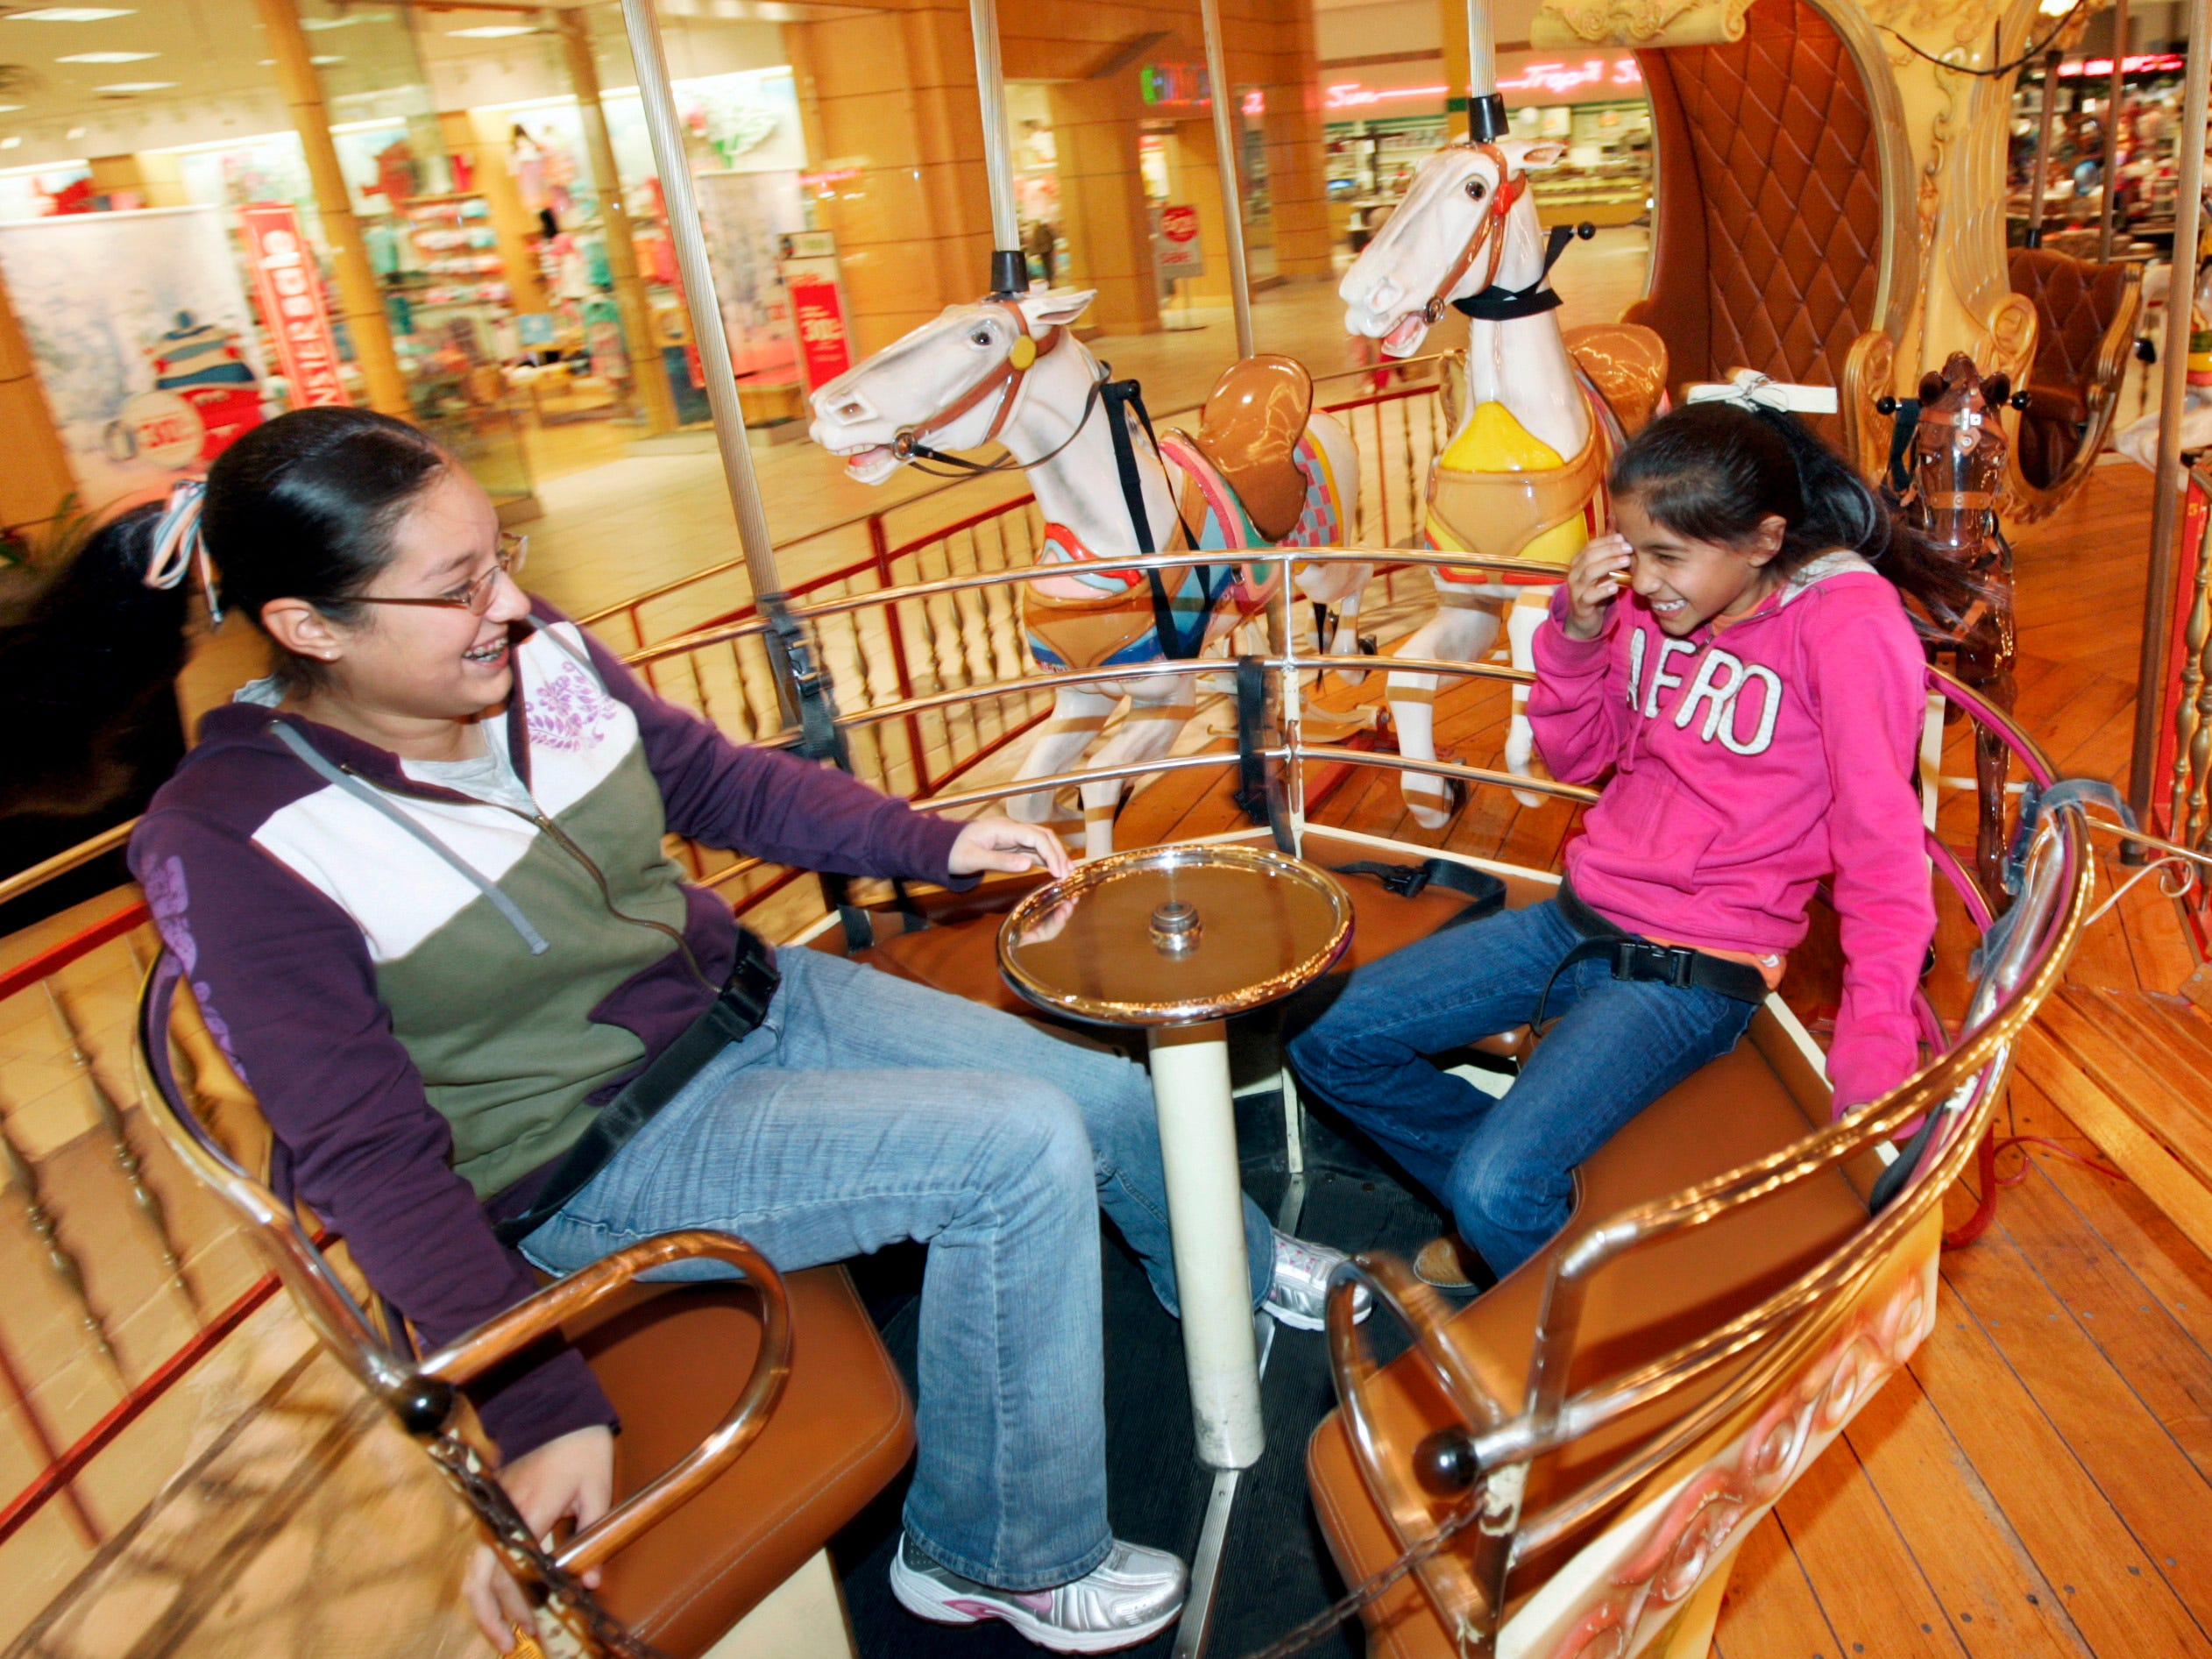 Desiree Trevino, 12, (left) and her 10-year-old sister Lauren Castellano, both from Refugio, laugh as they twirl around in one of the spinning tubs Wednesday, Jan. 14, 2009, on the carousel at La Palmera mall in Corpus Christi.